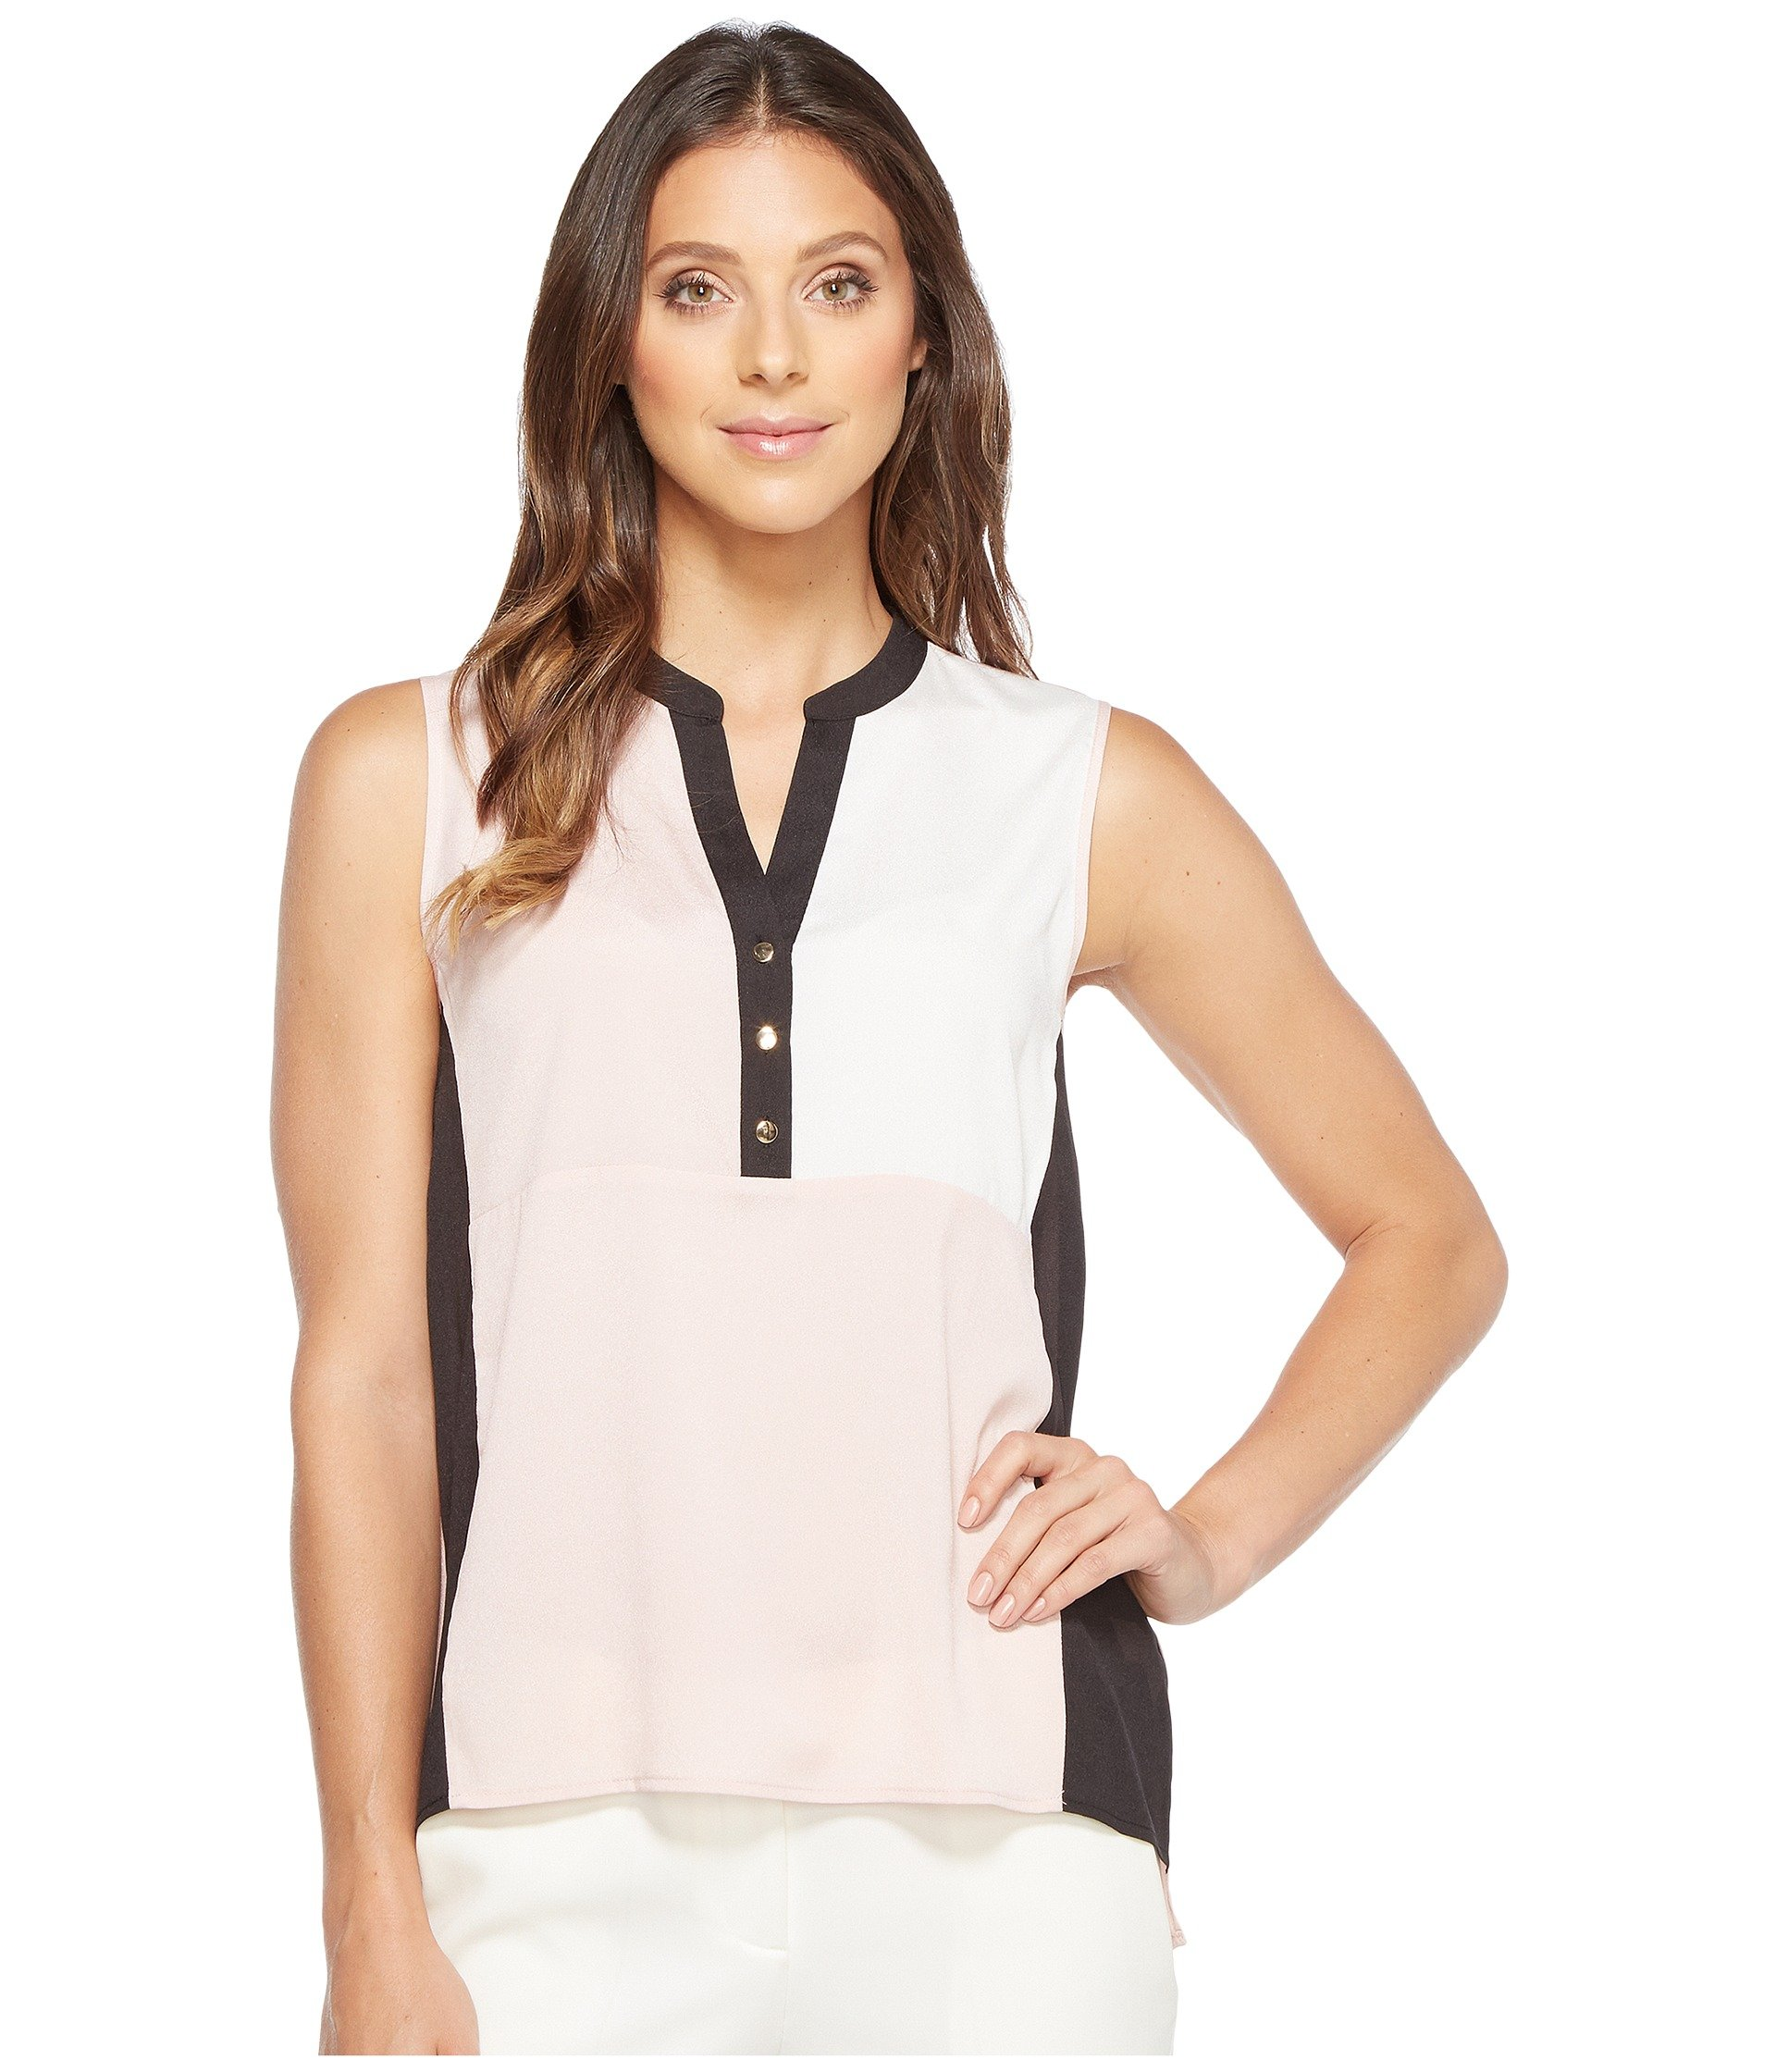 Georgette Color Block Sleeveless with Buttons